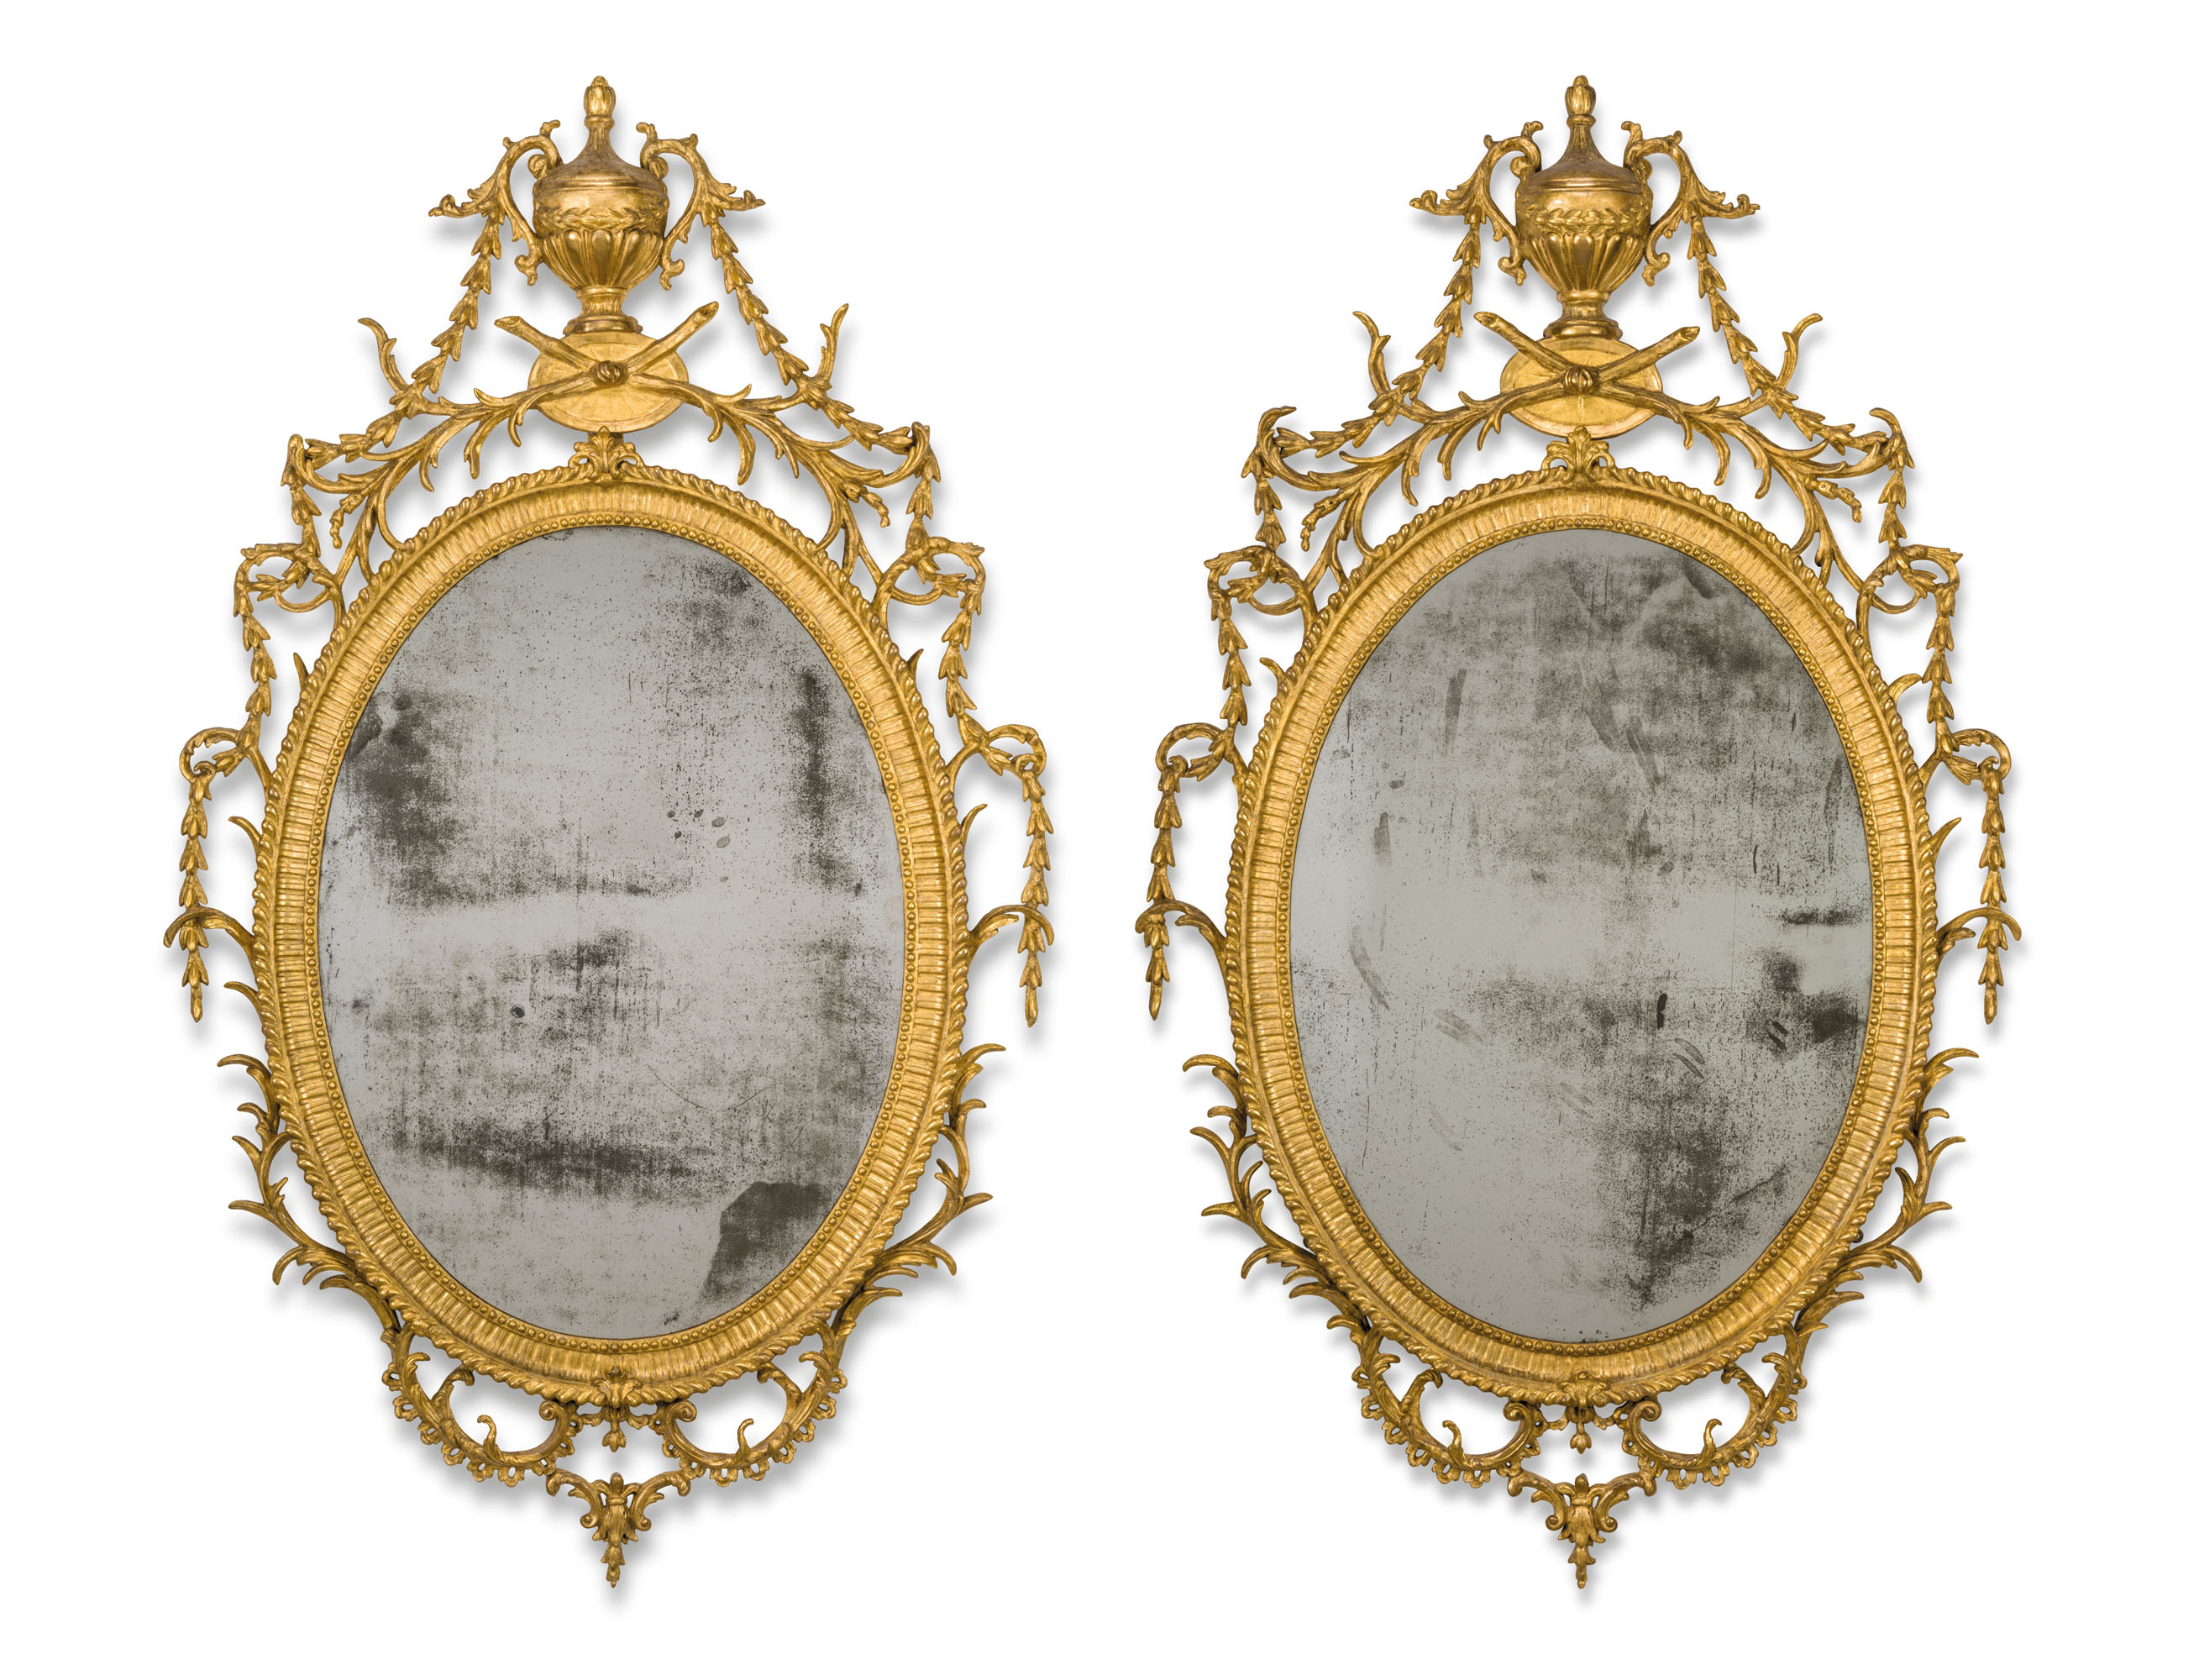 A PAIR OF GEORGE III GILTWOOD AND CARTON PIERRE OVAL MIRRORS